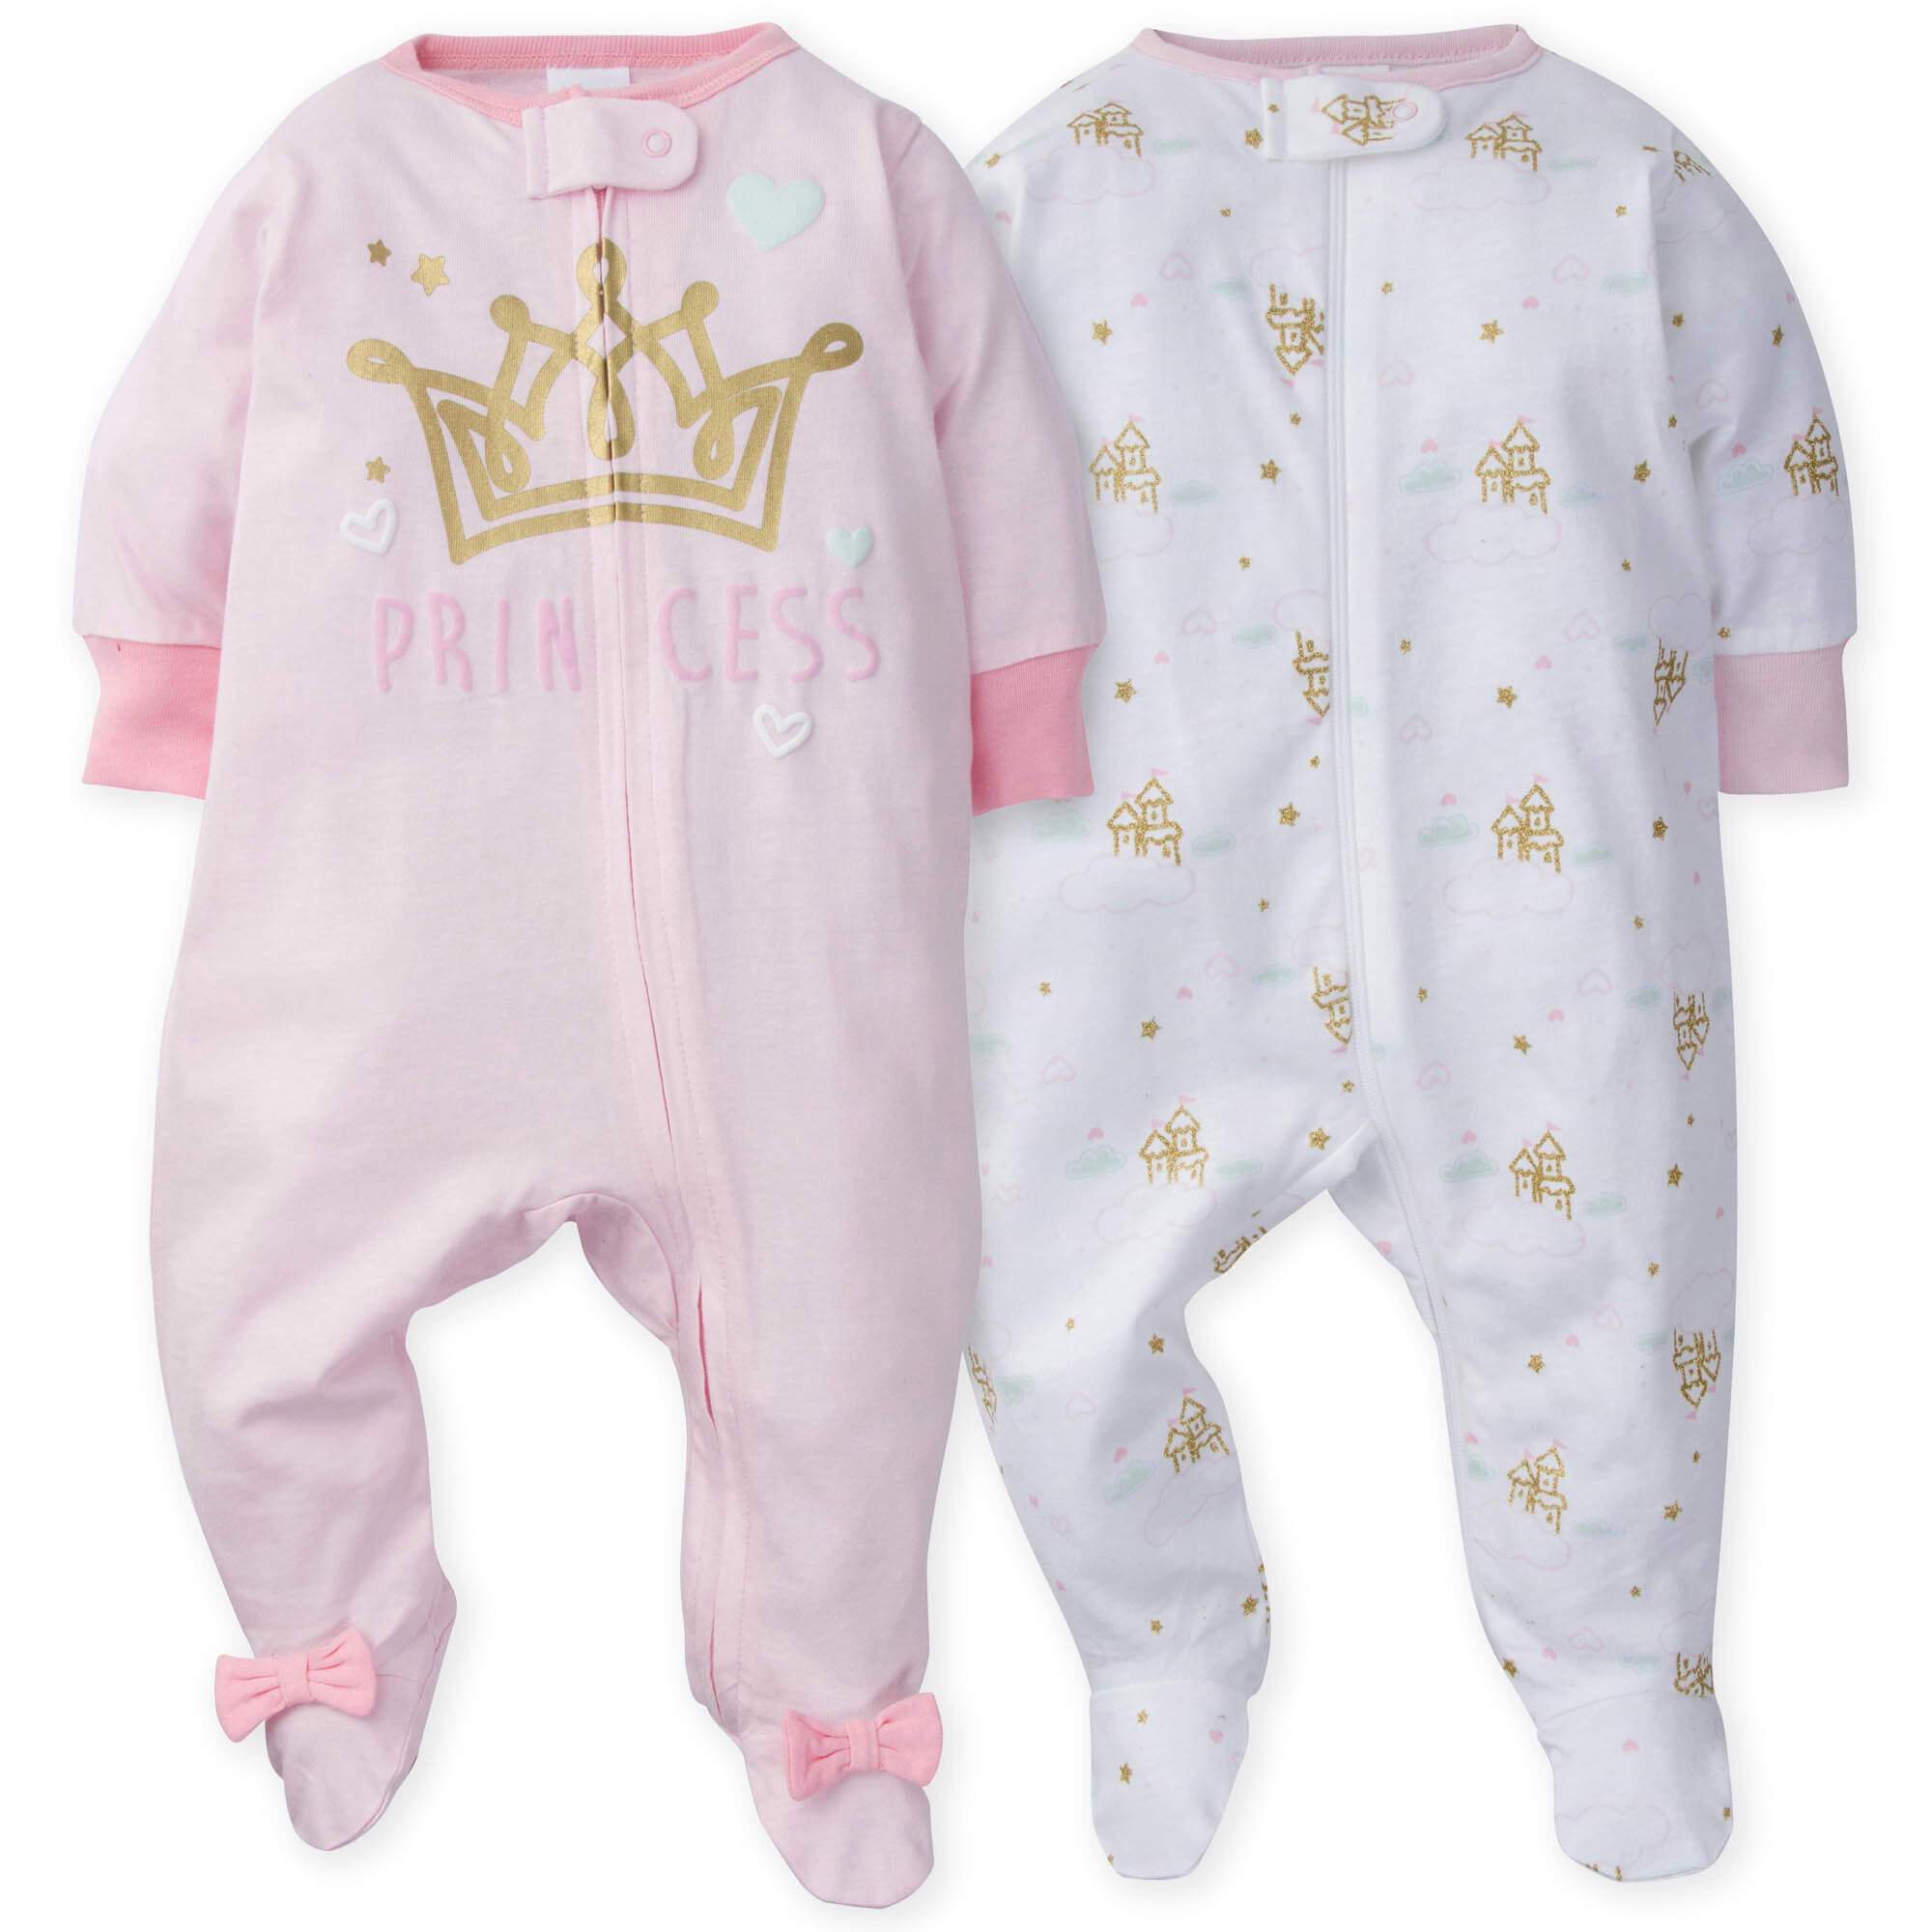 Gerber® 2-Pack Baby Girls Princess Castle Sleep N' Plays-Gerber Childrenswear